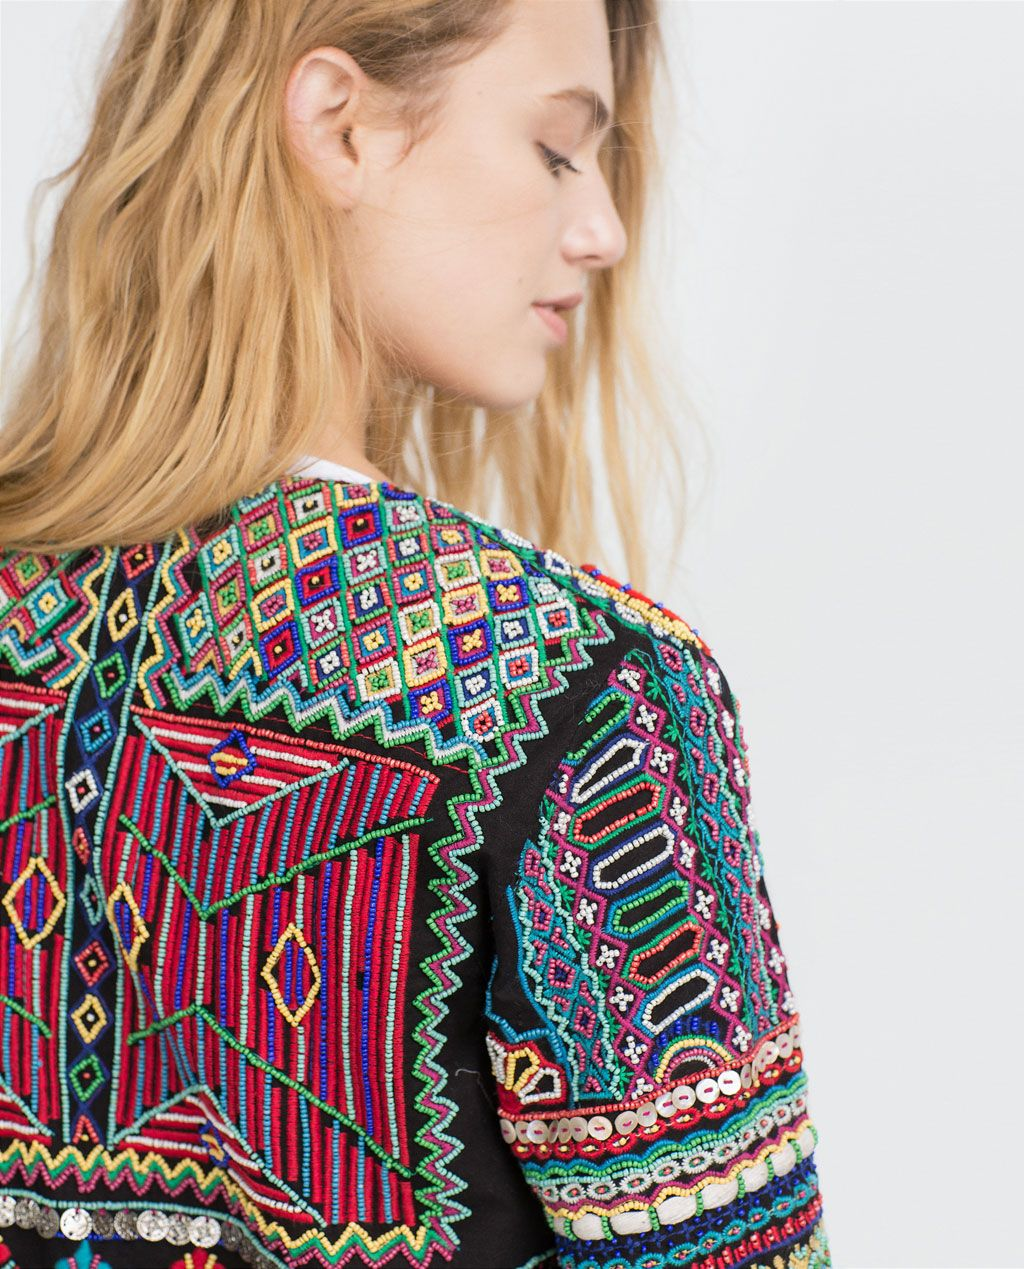 EMBROIDERED JACKET from Zara | Embroidered jacket, Lush